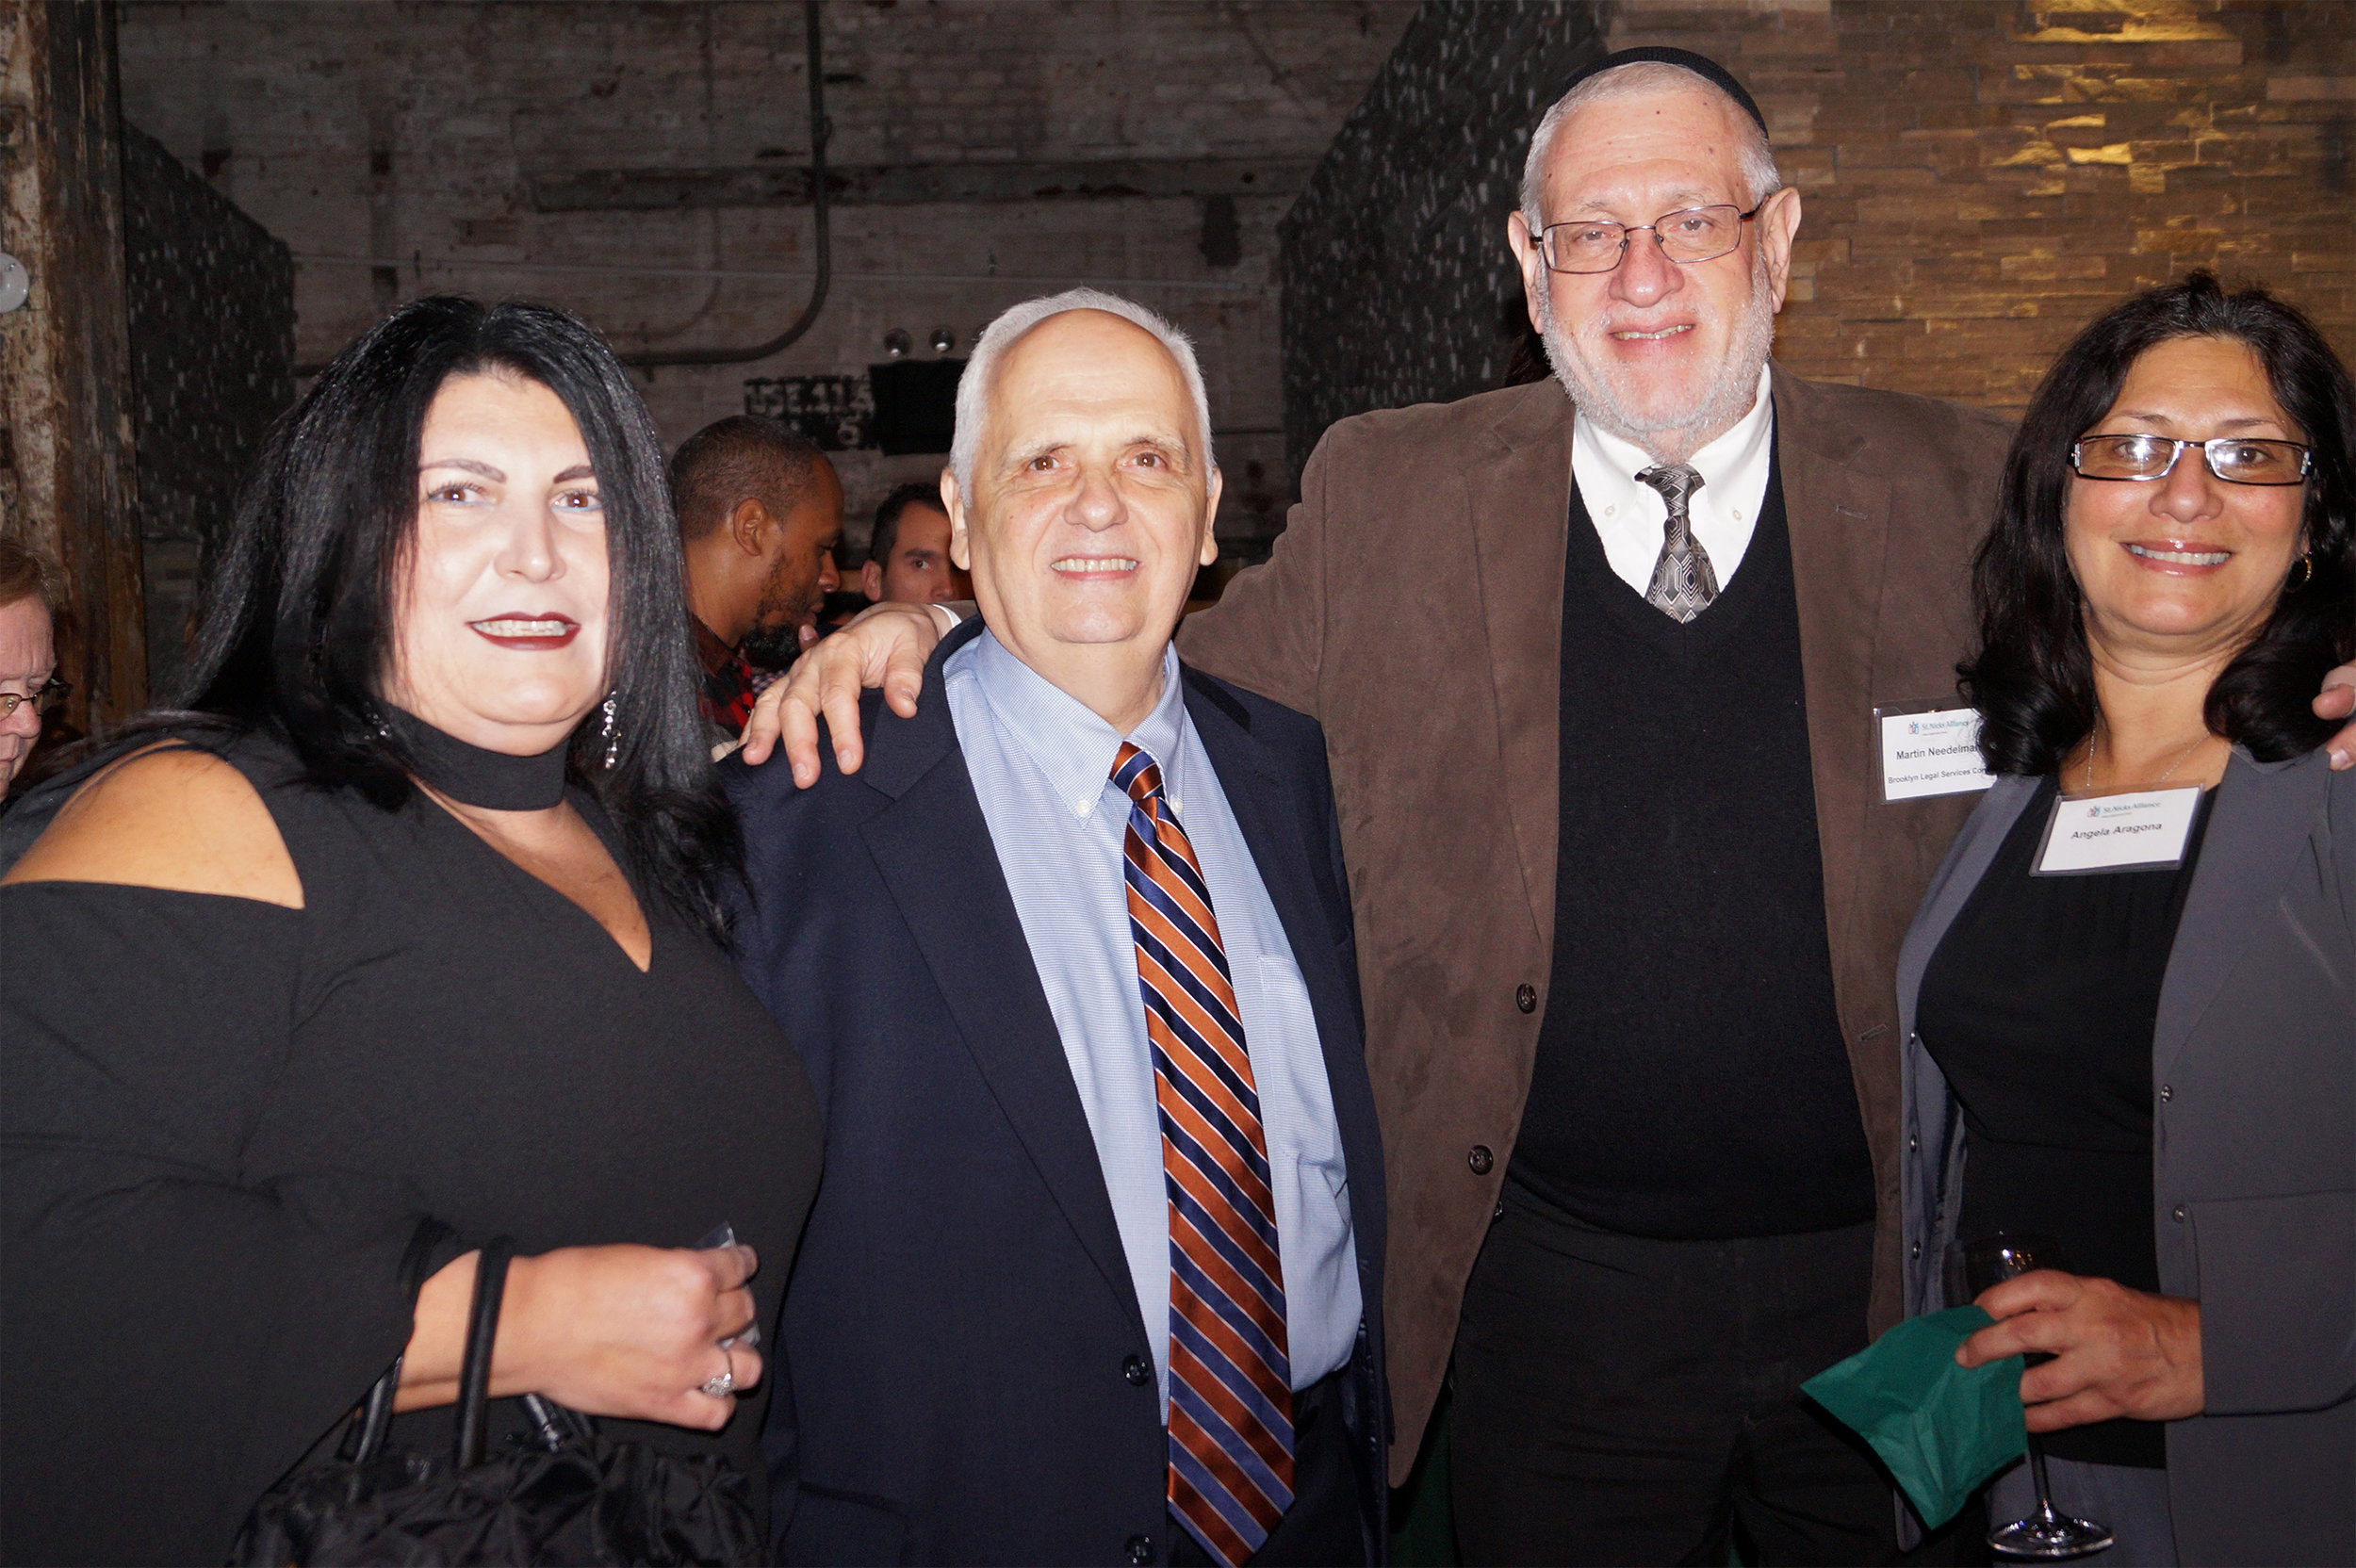 St. Nicks Alliance honored leaders in education and protectors of community at 2017's Benefit. (l to r) RoseAnn LaCioppa (Principal of PS 250), Assemblyman Joe Lentol, Martin Needelman Esq. (Executive Director & Chief Counsel, Brooklyn Legal Services Corp. A), and Angela Aragona (PS 132 teacher)